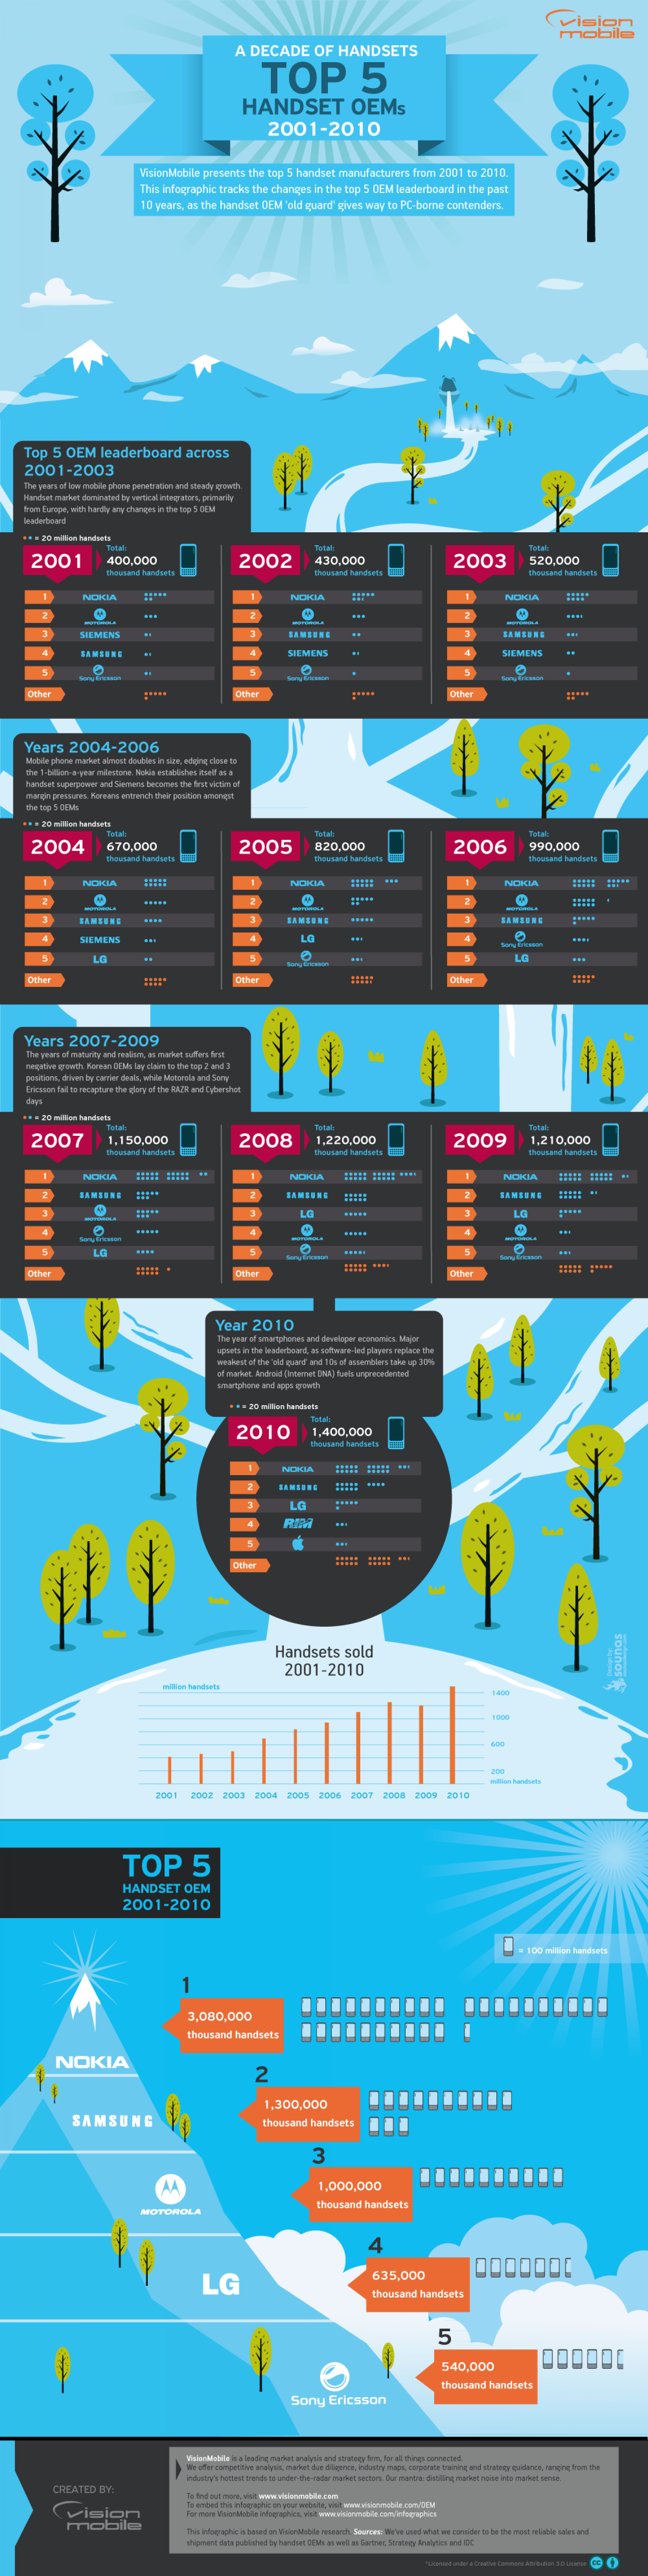 Top 5 Handset OEMs 2001-2010 Infographic